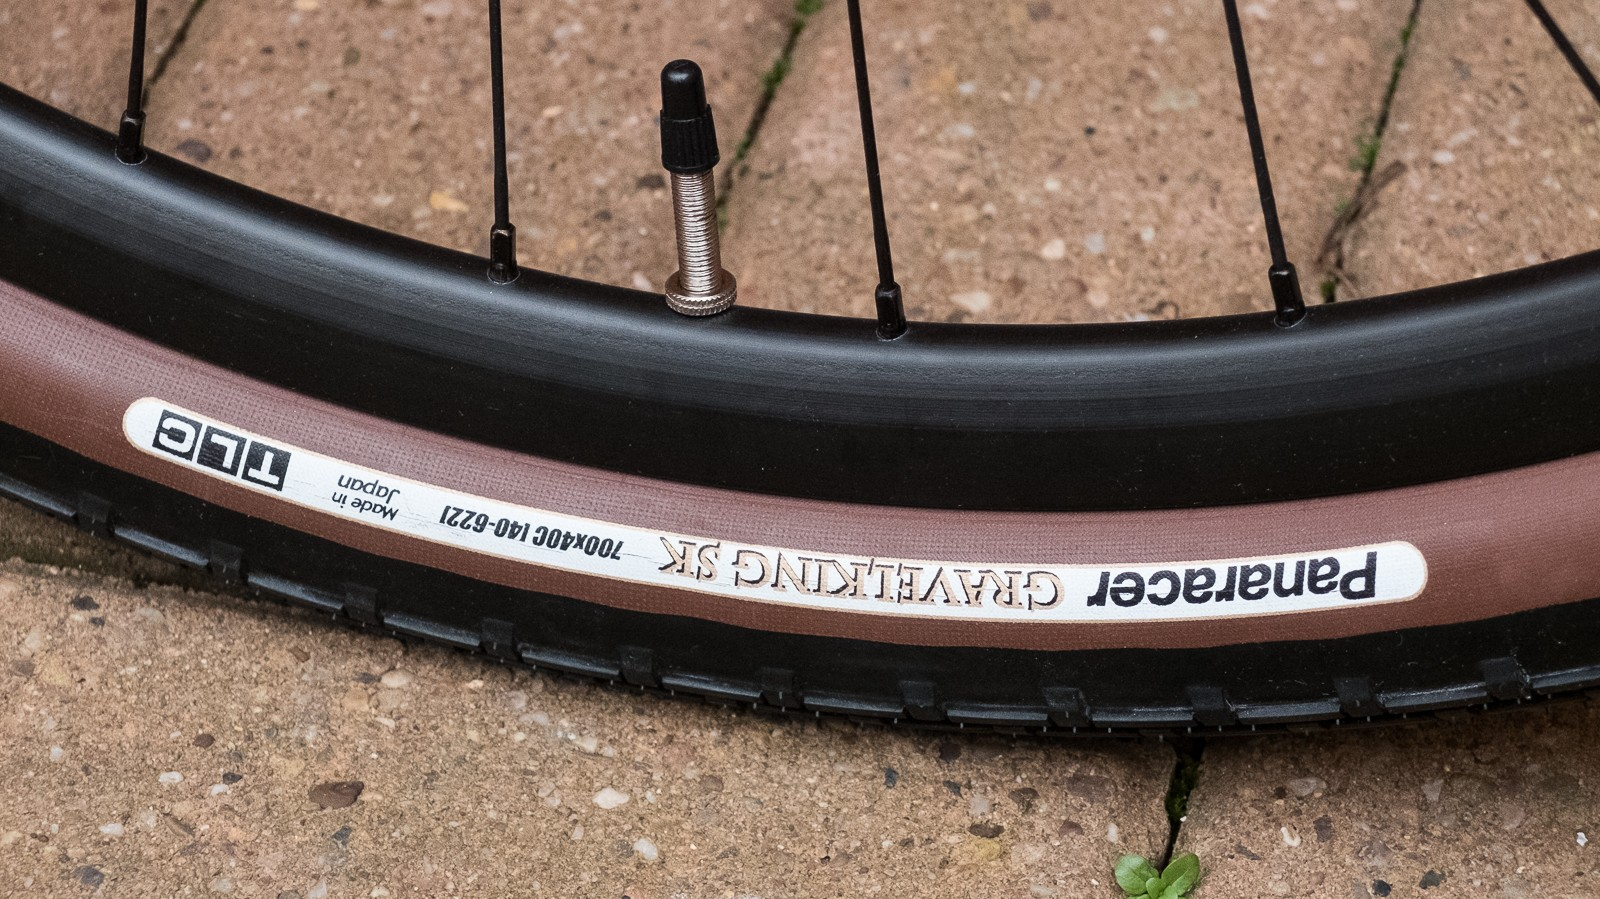 We love the look of the mocha coloured sidewalls on these Panaracer Gravel King tyres